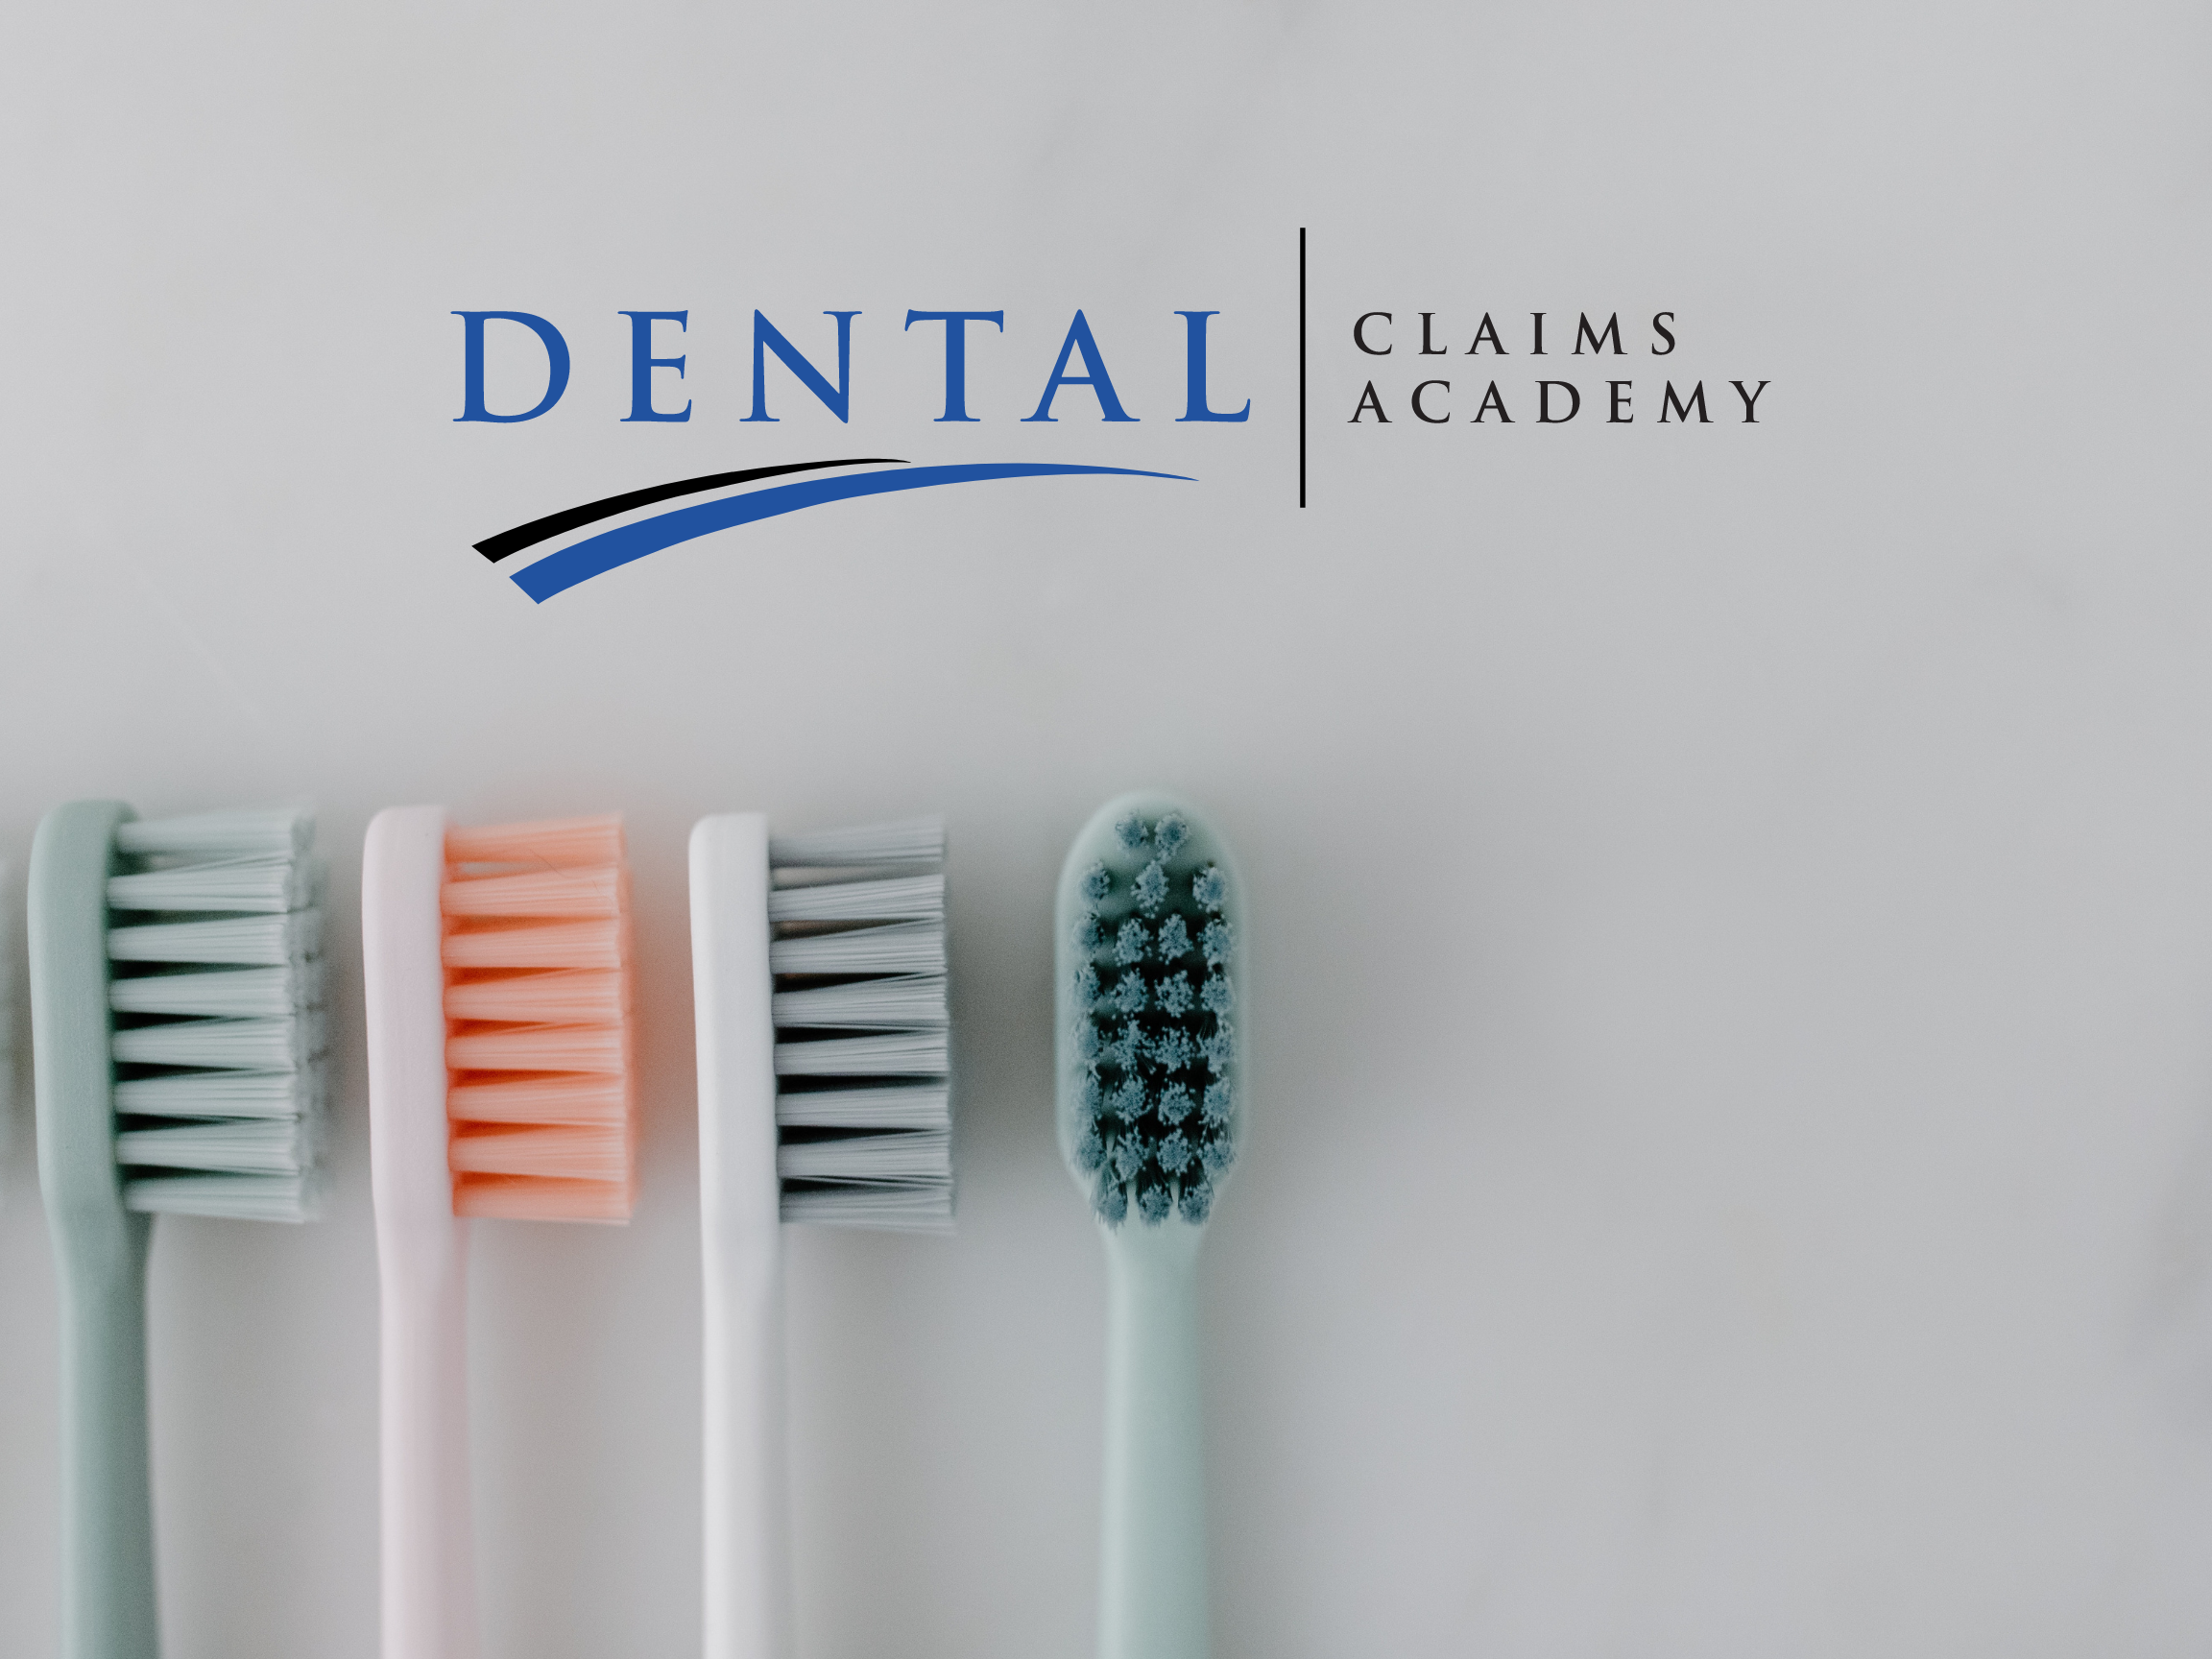 Dental ClaimSupport launches educational platform, Dental Claims Academy as a resource for dental professionals